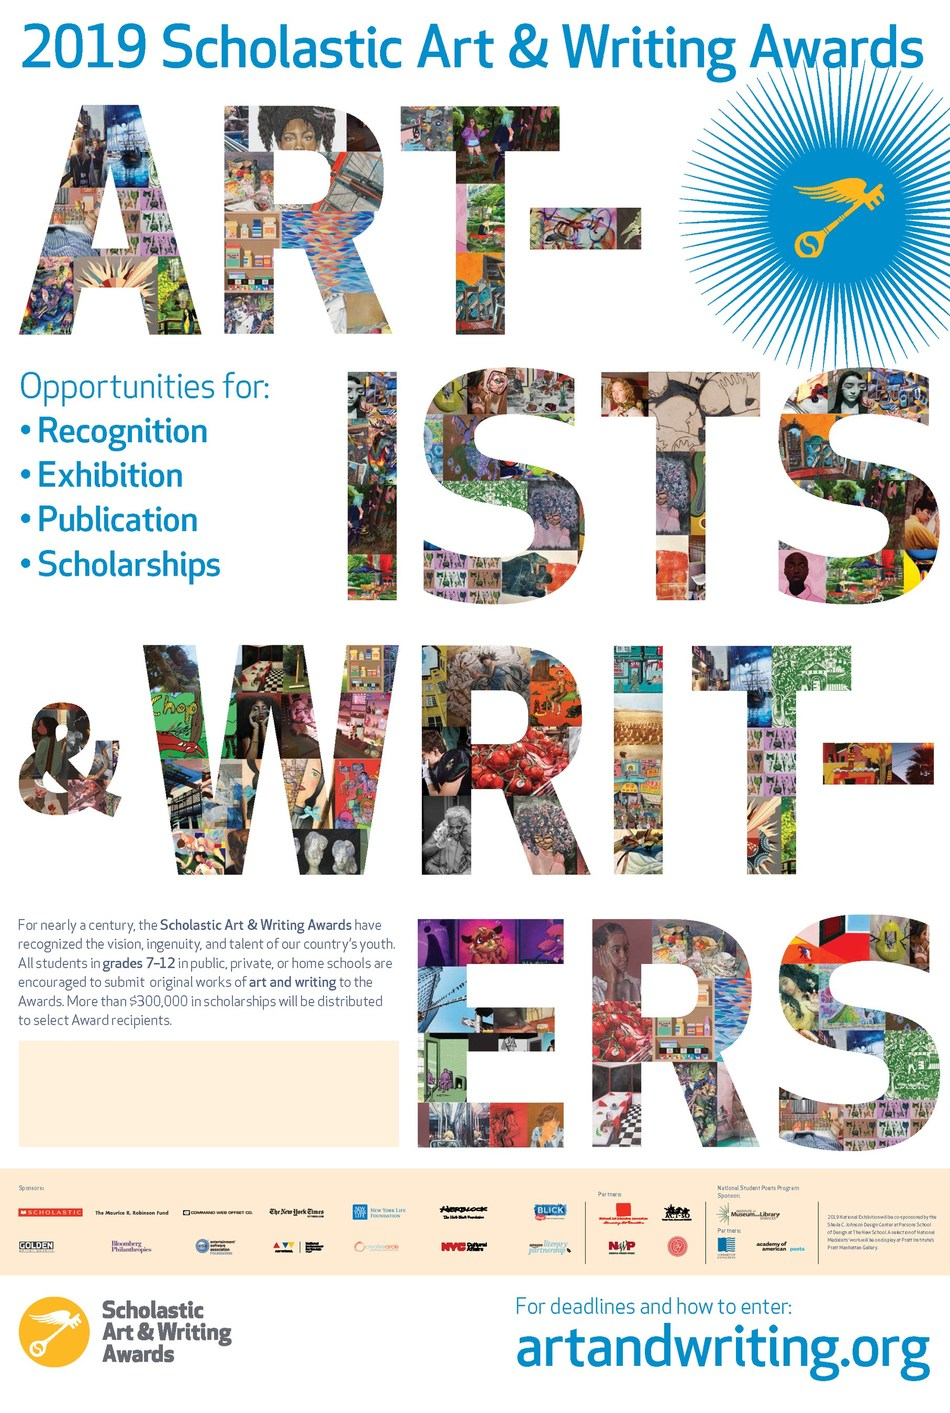 The Scholastic Art & Writing Awards, the nation's longest-running and most prestigious scholarship and recognition program for creative teens, are now accepting submissions from students in grades 7–12 from across the country. To learn more, visit http://artandwriting.org.